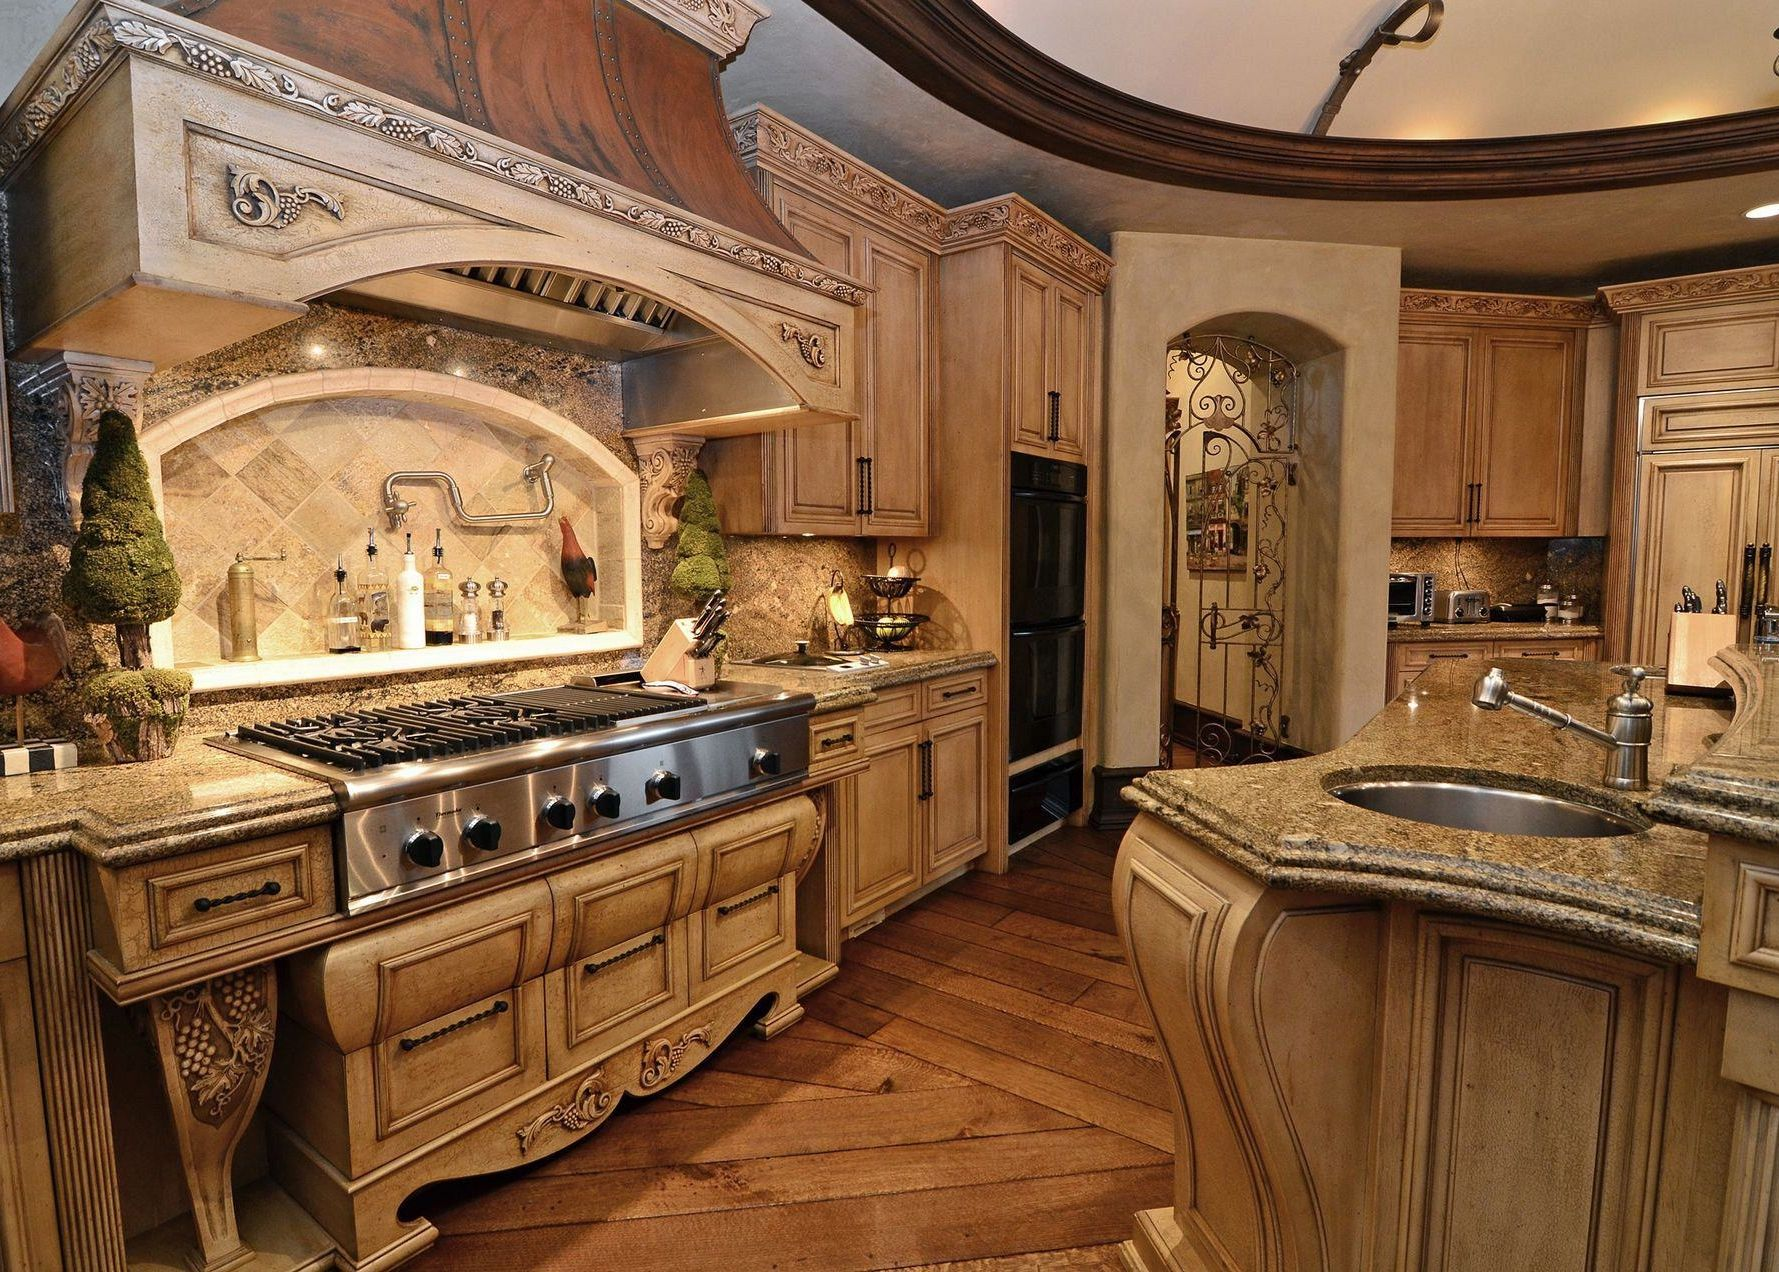 Old World Kitchens Interior And Exterior Design Ideas Kitchens Pinterest Kitchens